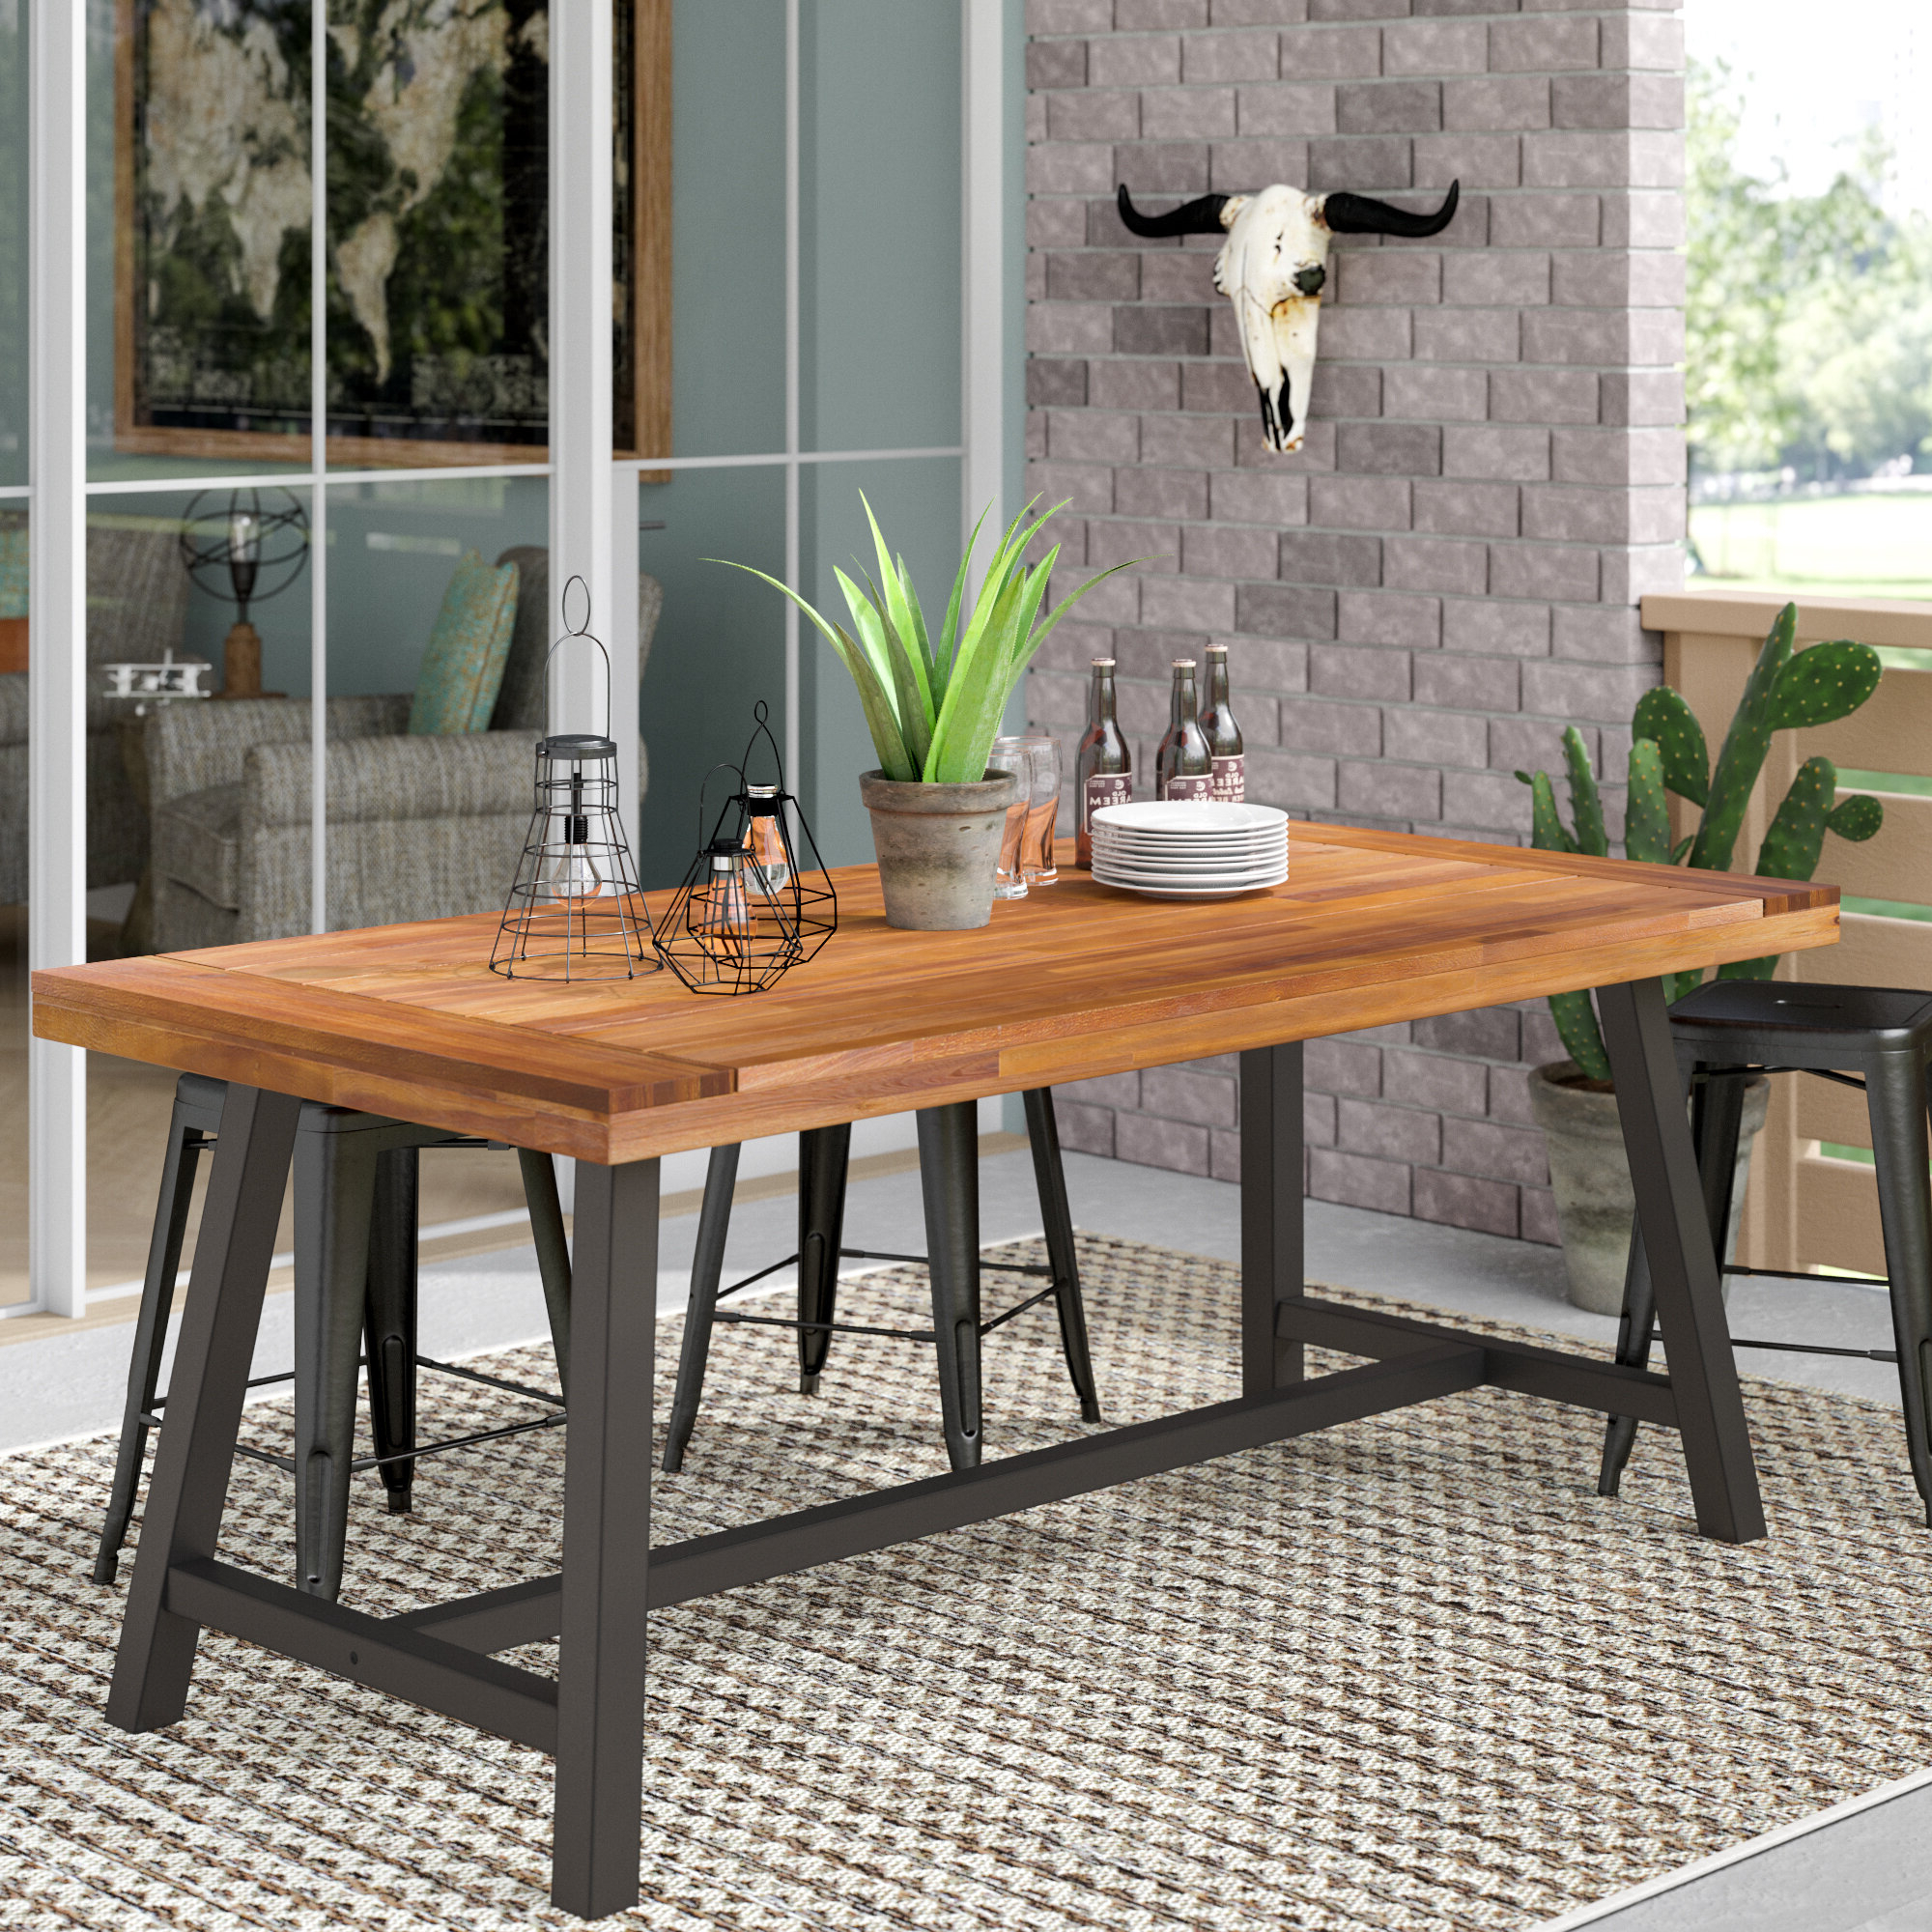 Acacia Top Dining Tables With Metal Legs In Latest 17 Stories Polanco Dining Table & Reviews (View 14 of 25)